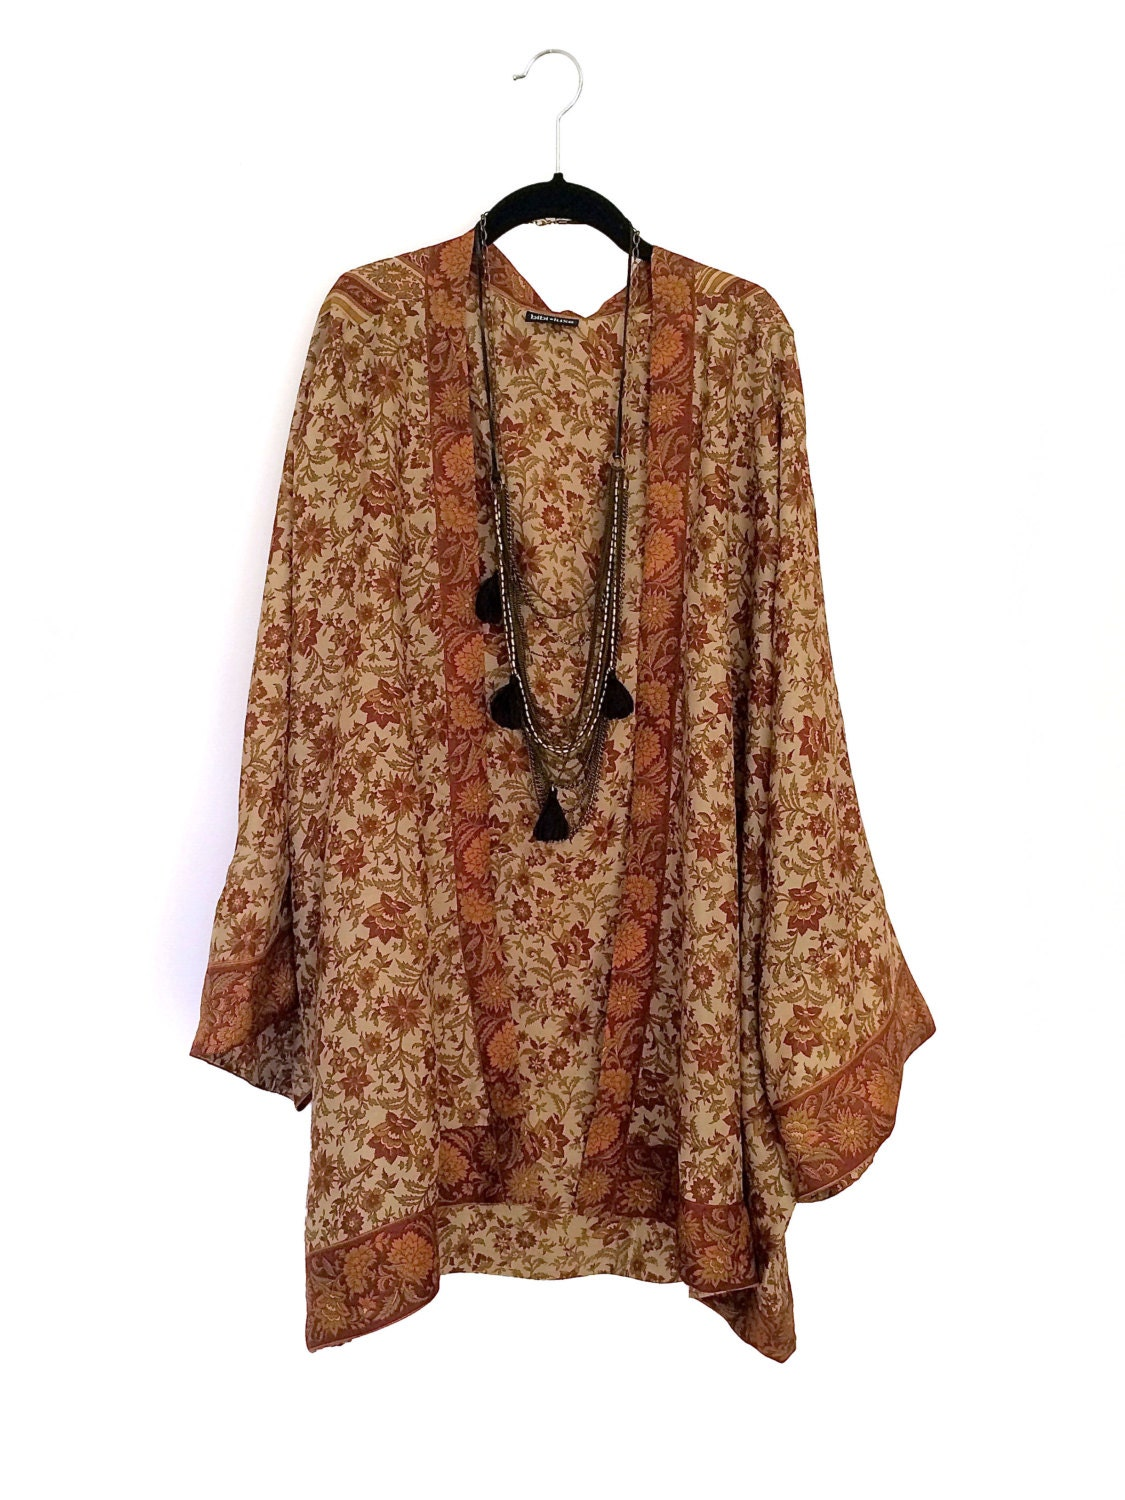 Silk Kimono Jacket Oversized Cocoon Beach Cover Up Brown And